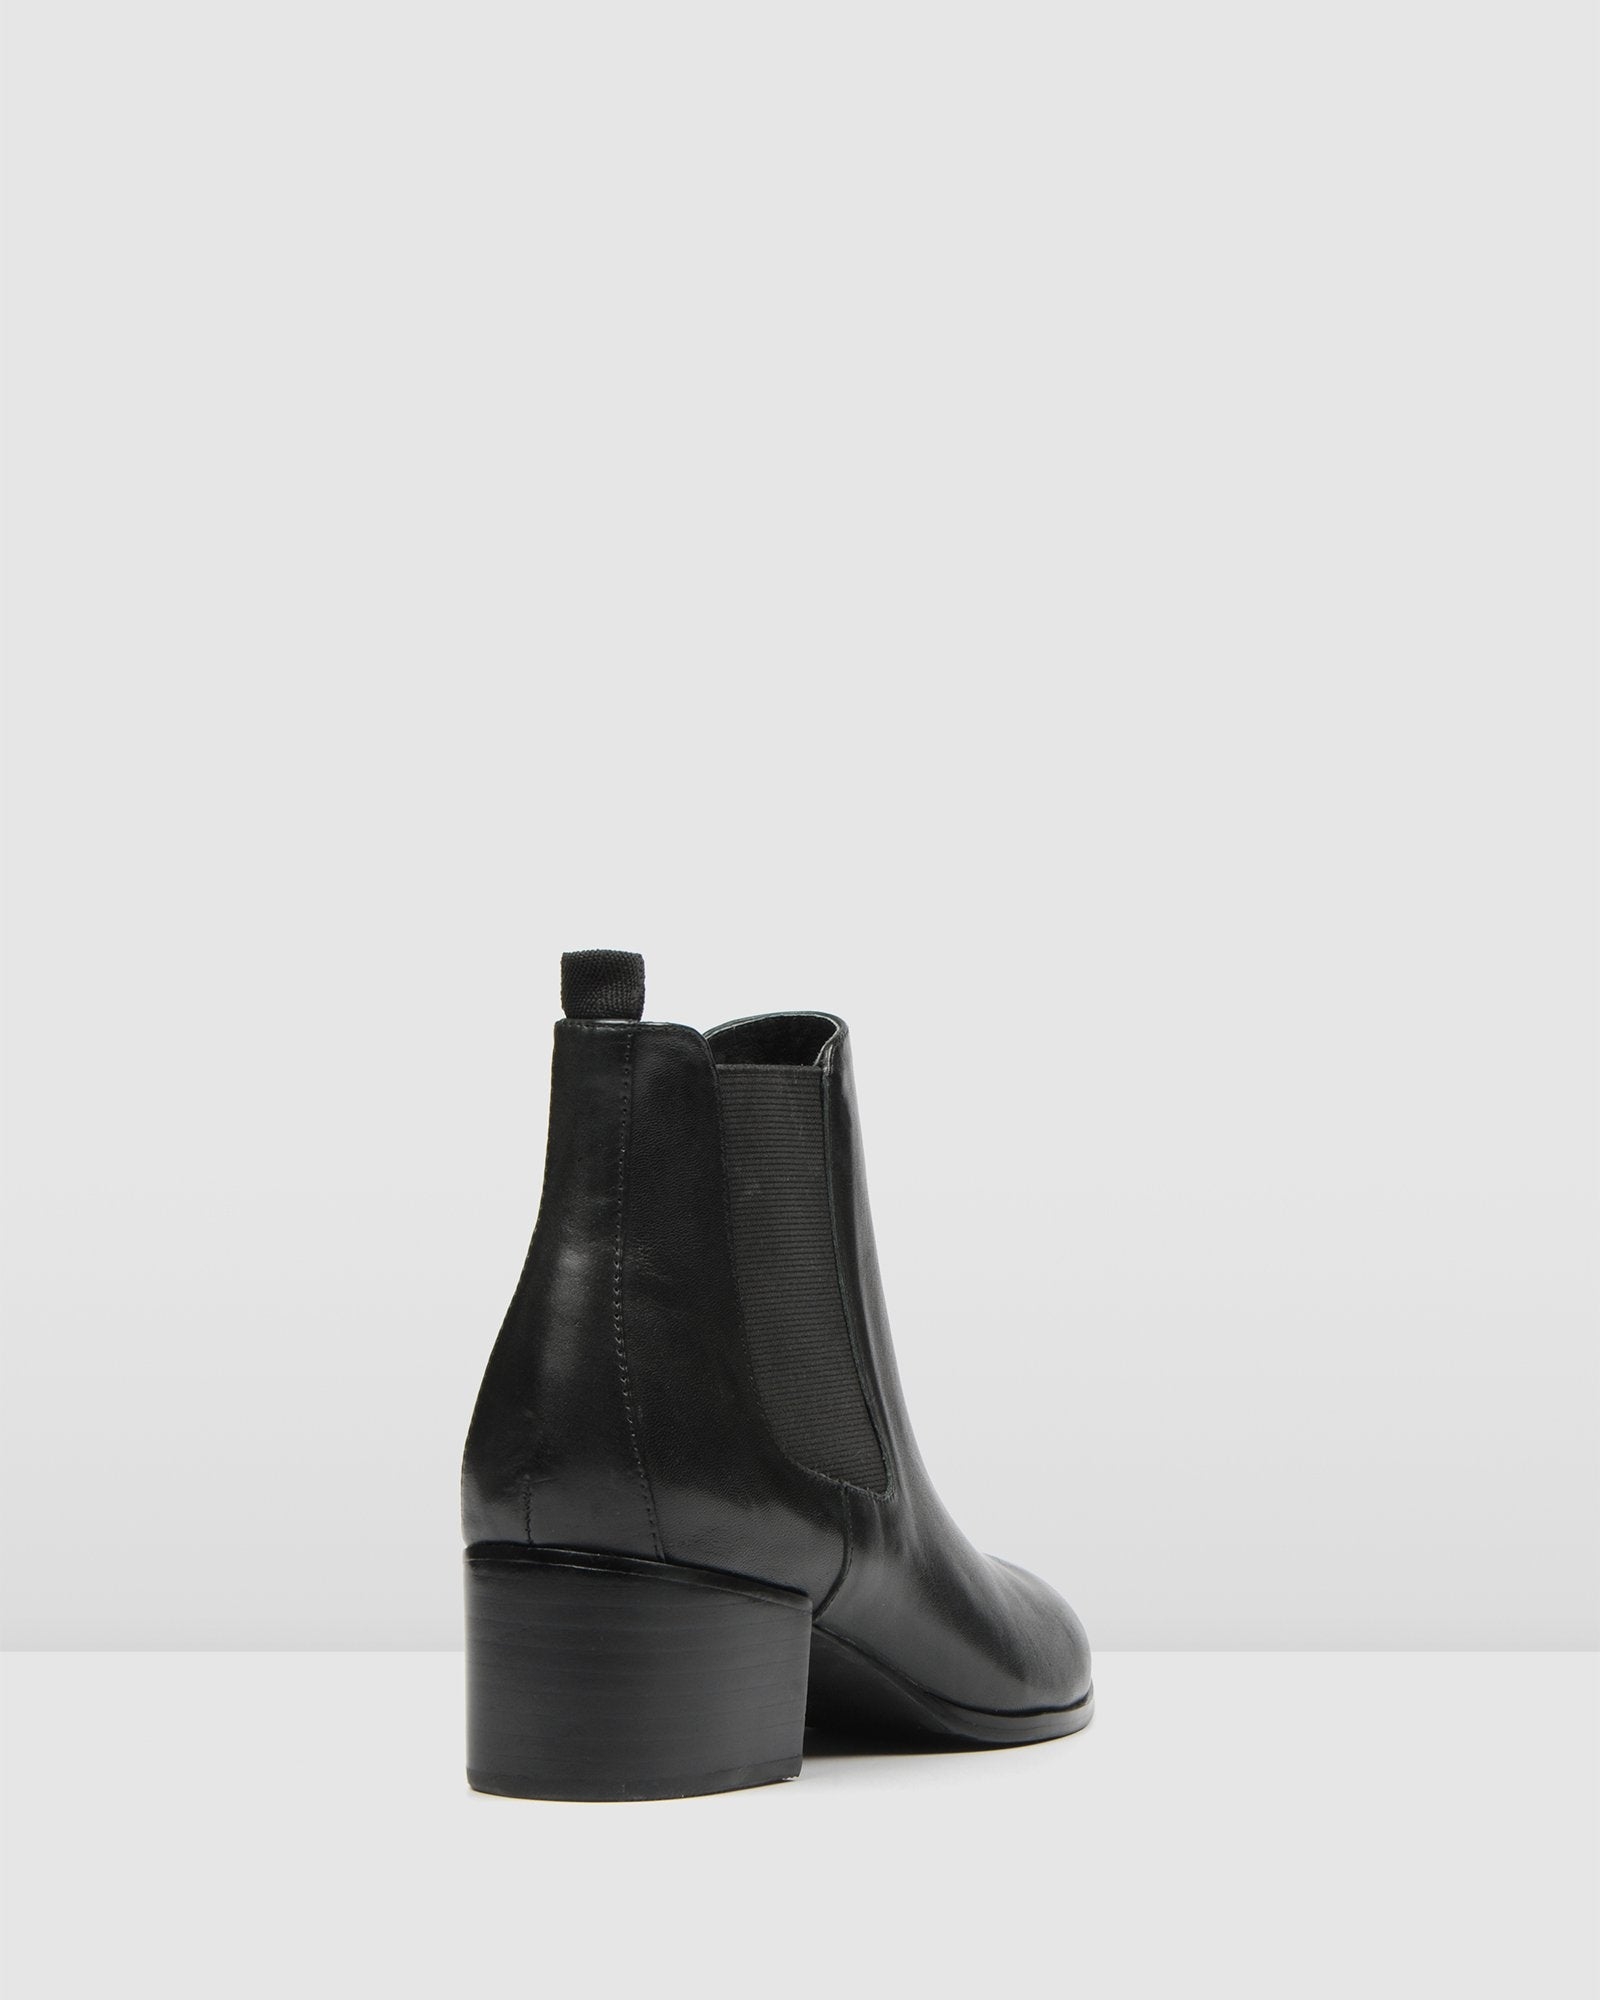 MONSTER MID ANKLE BOOTS BLACK LEATHER